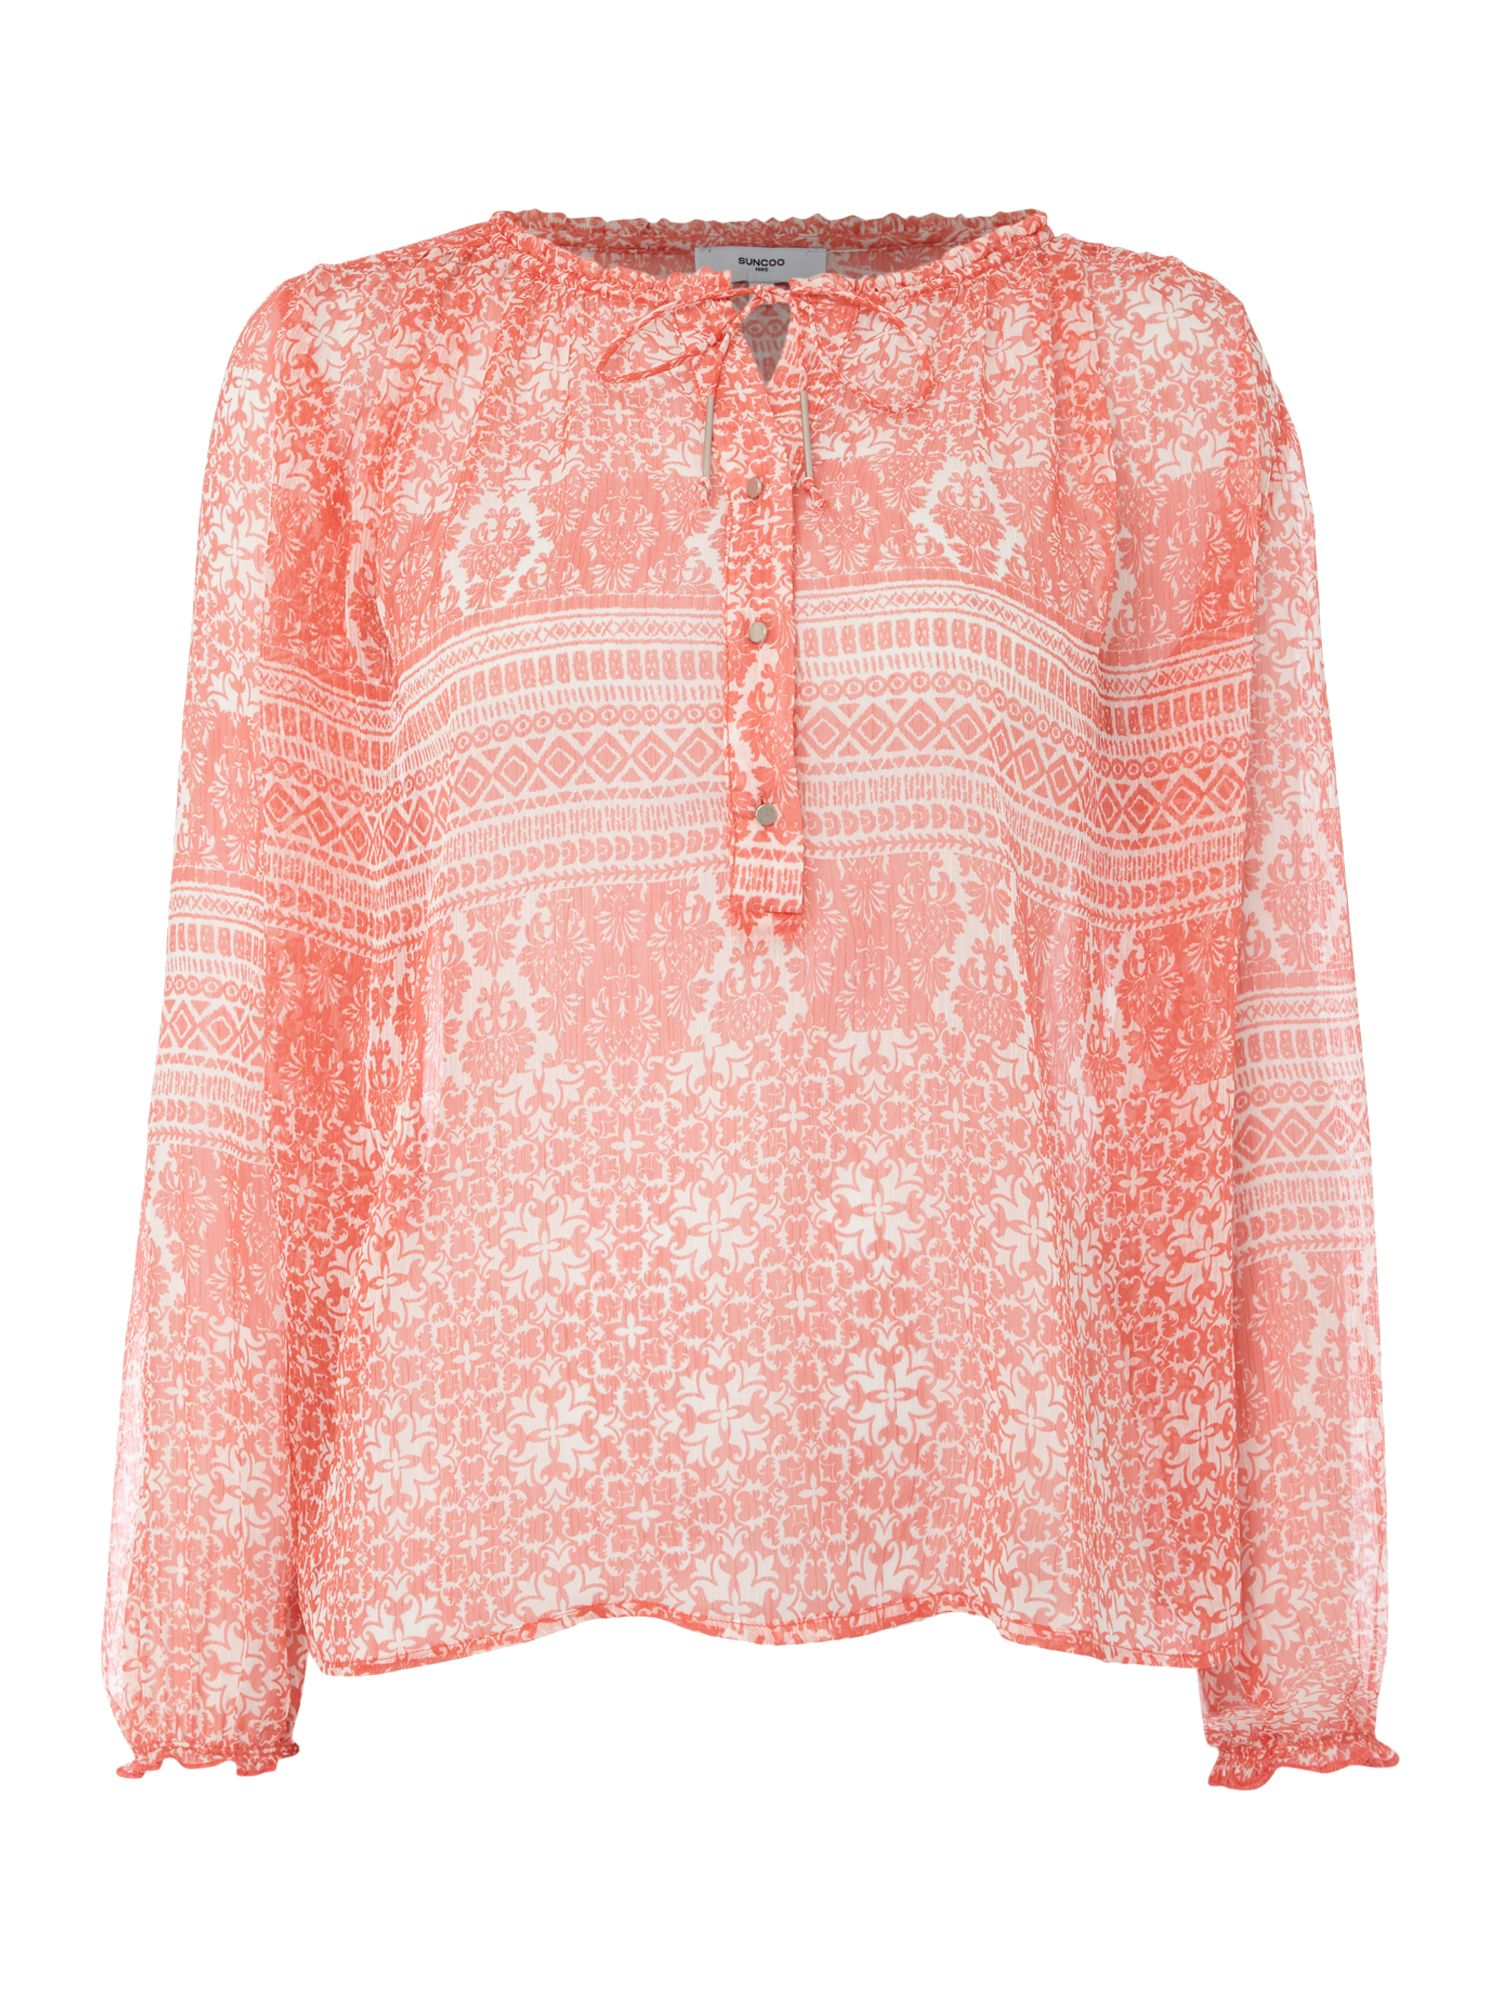 Suncoo Loic Printed Long Sleeve Blouse with Tie, Red